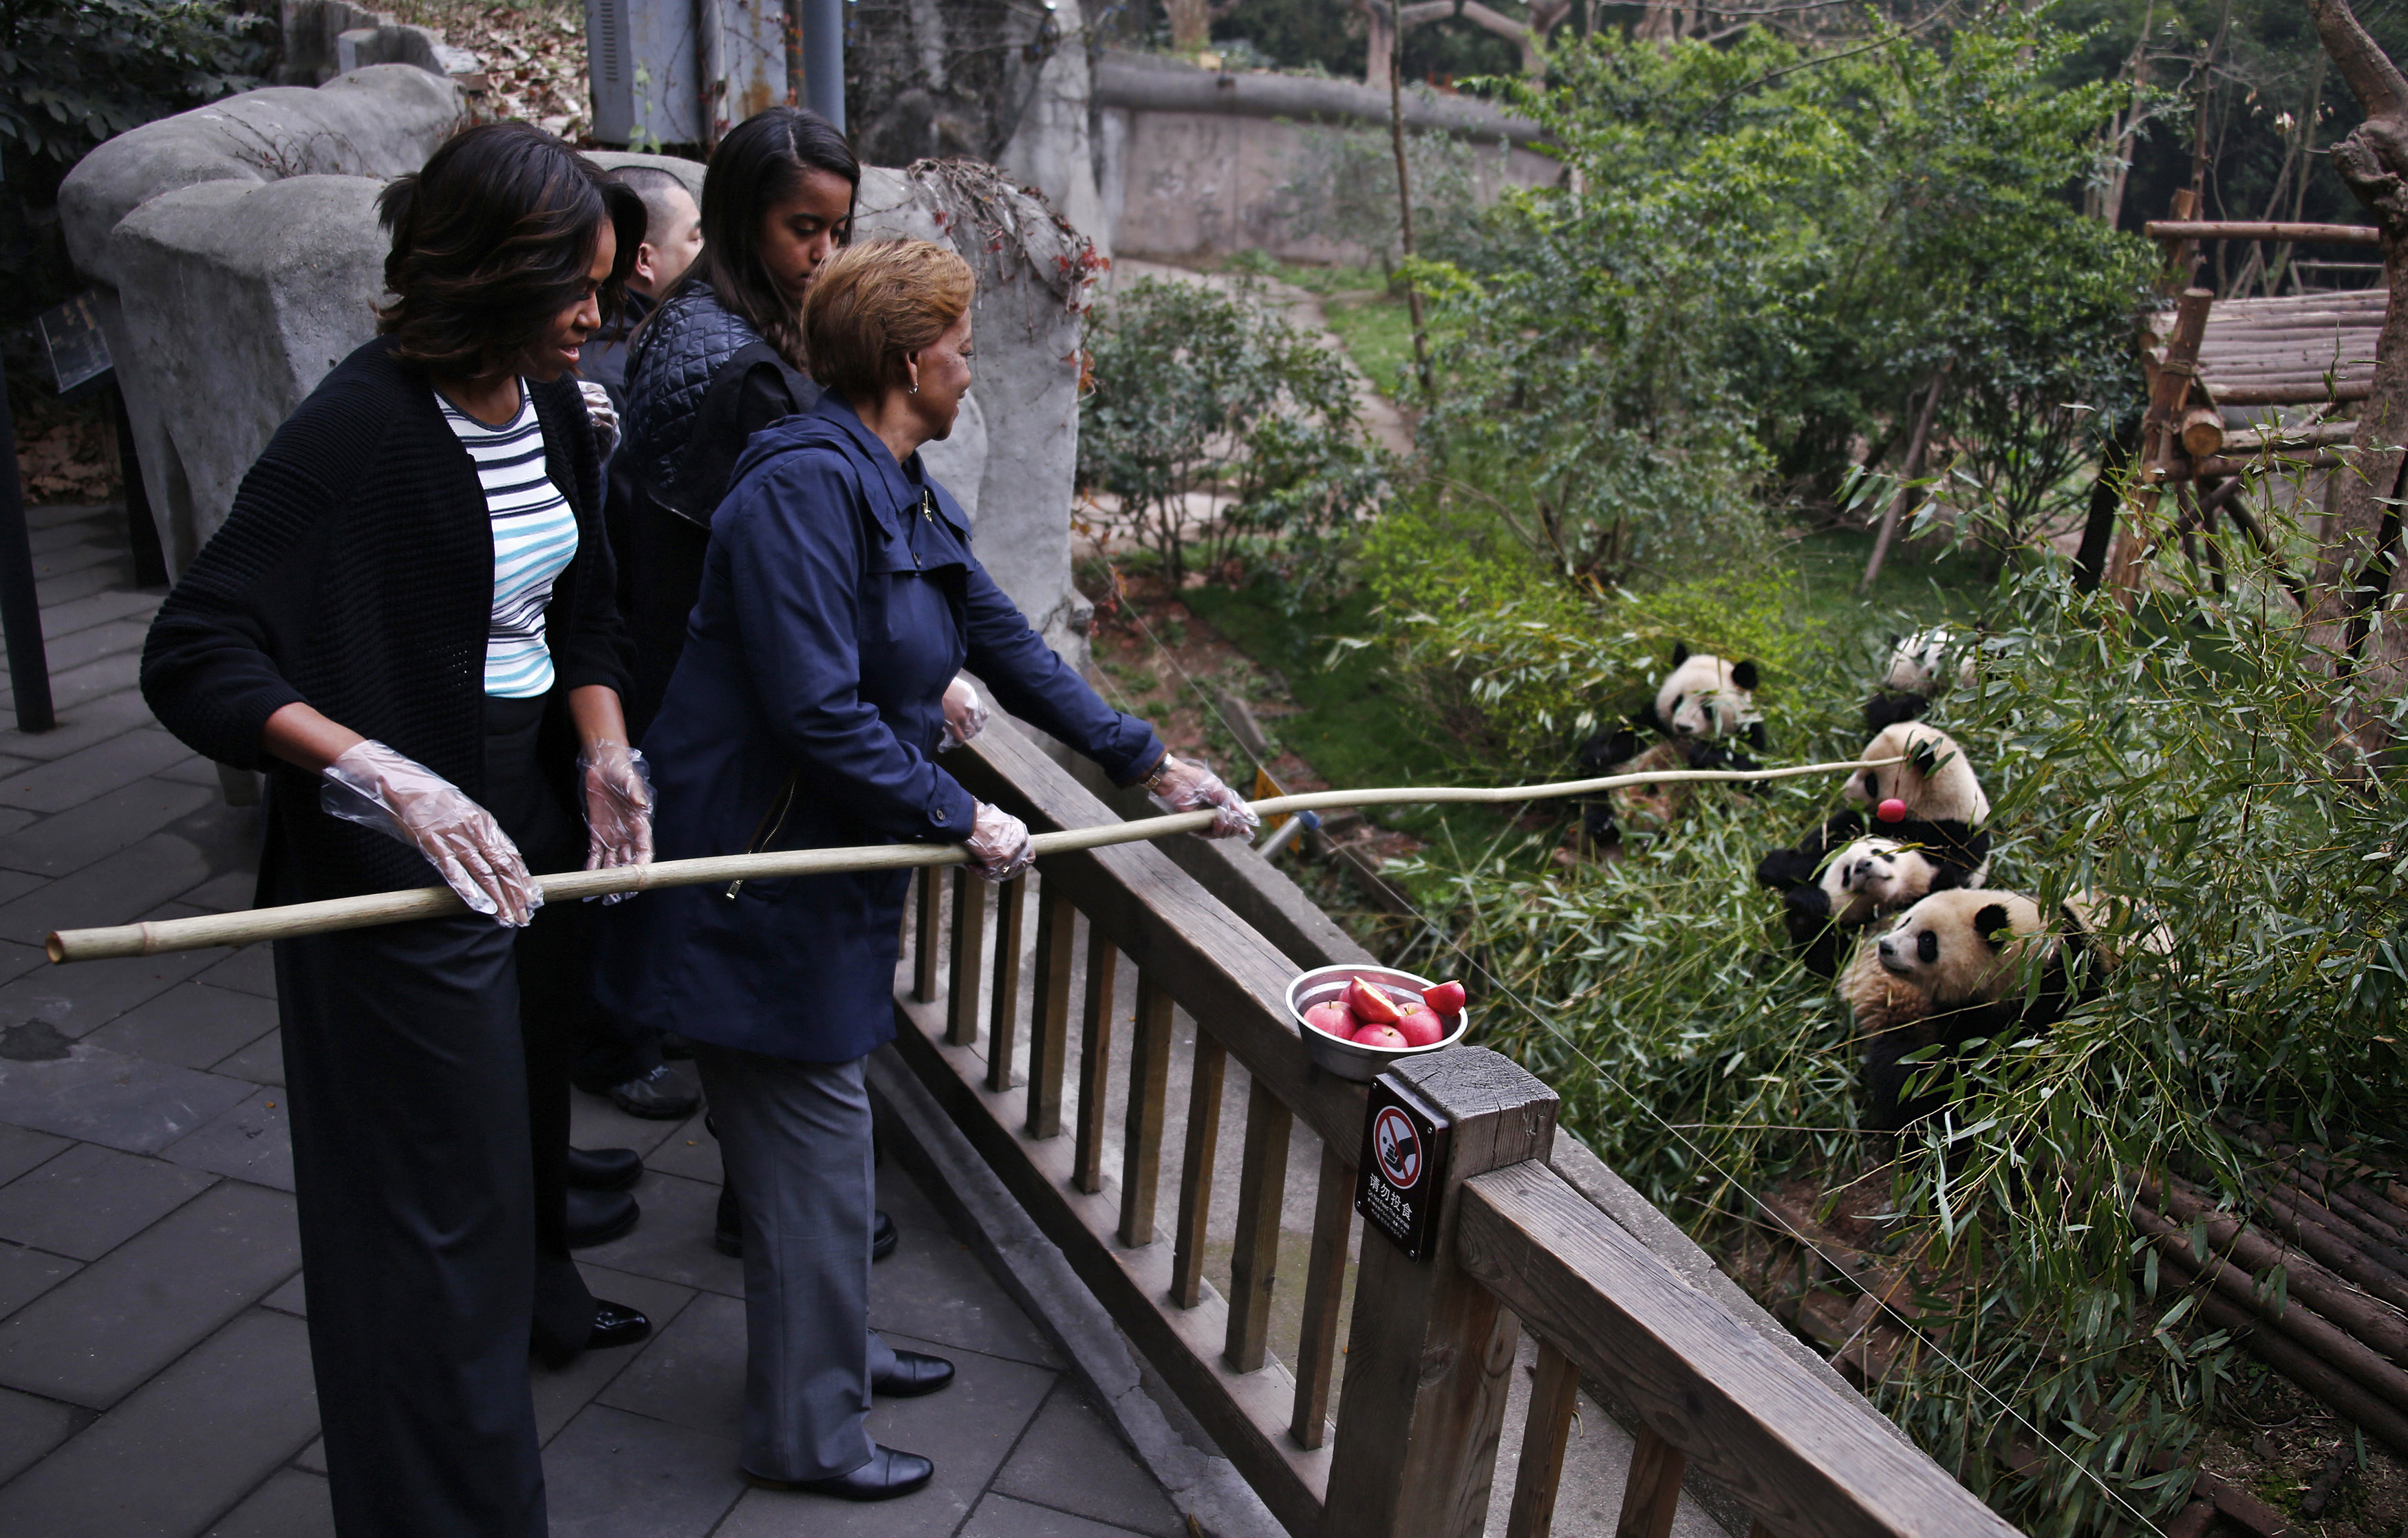 U.S. first lady Michelle Obama (L) and her mother Marian Robinson (R) feed apple to giant pandas as daughter Malia looks on during their visit at Giant Panda Research Base in Chengdu, Sichuan province, March 26, 2014.